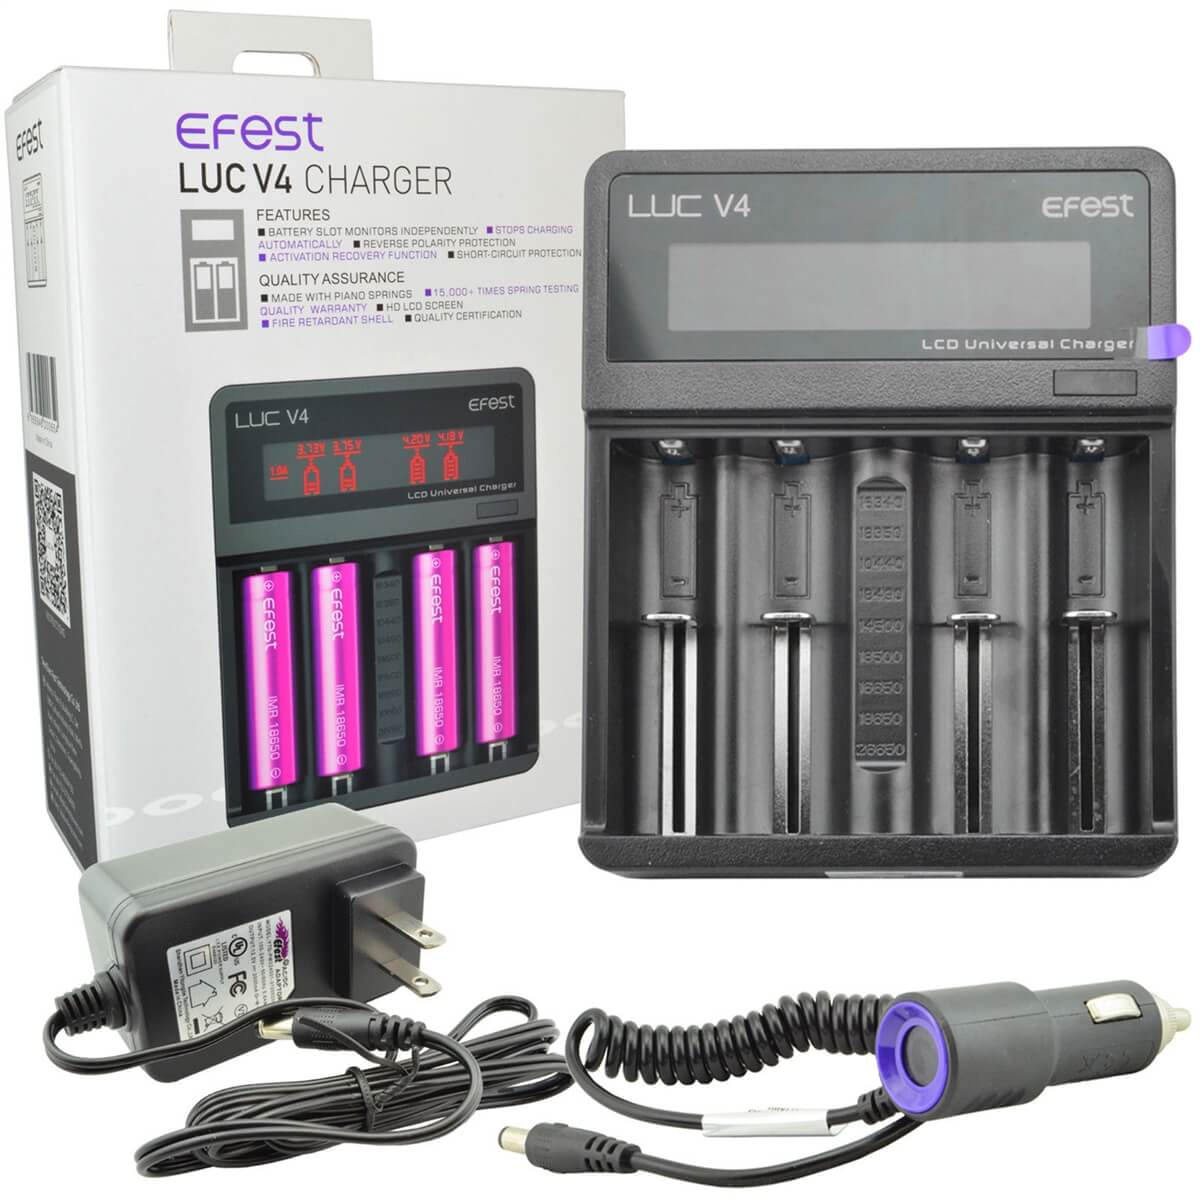 Efest Luc V4 Battery Charger